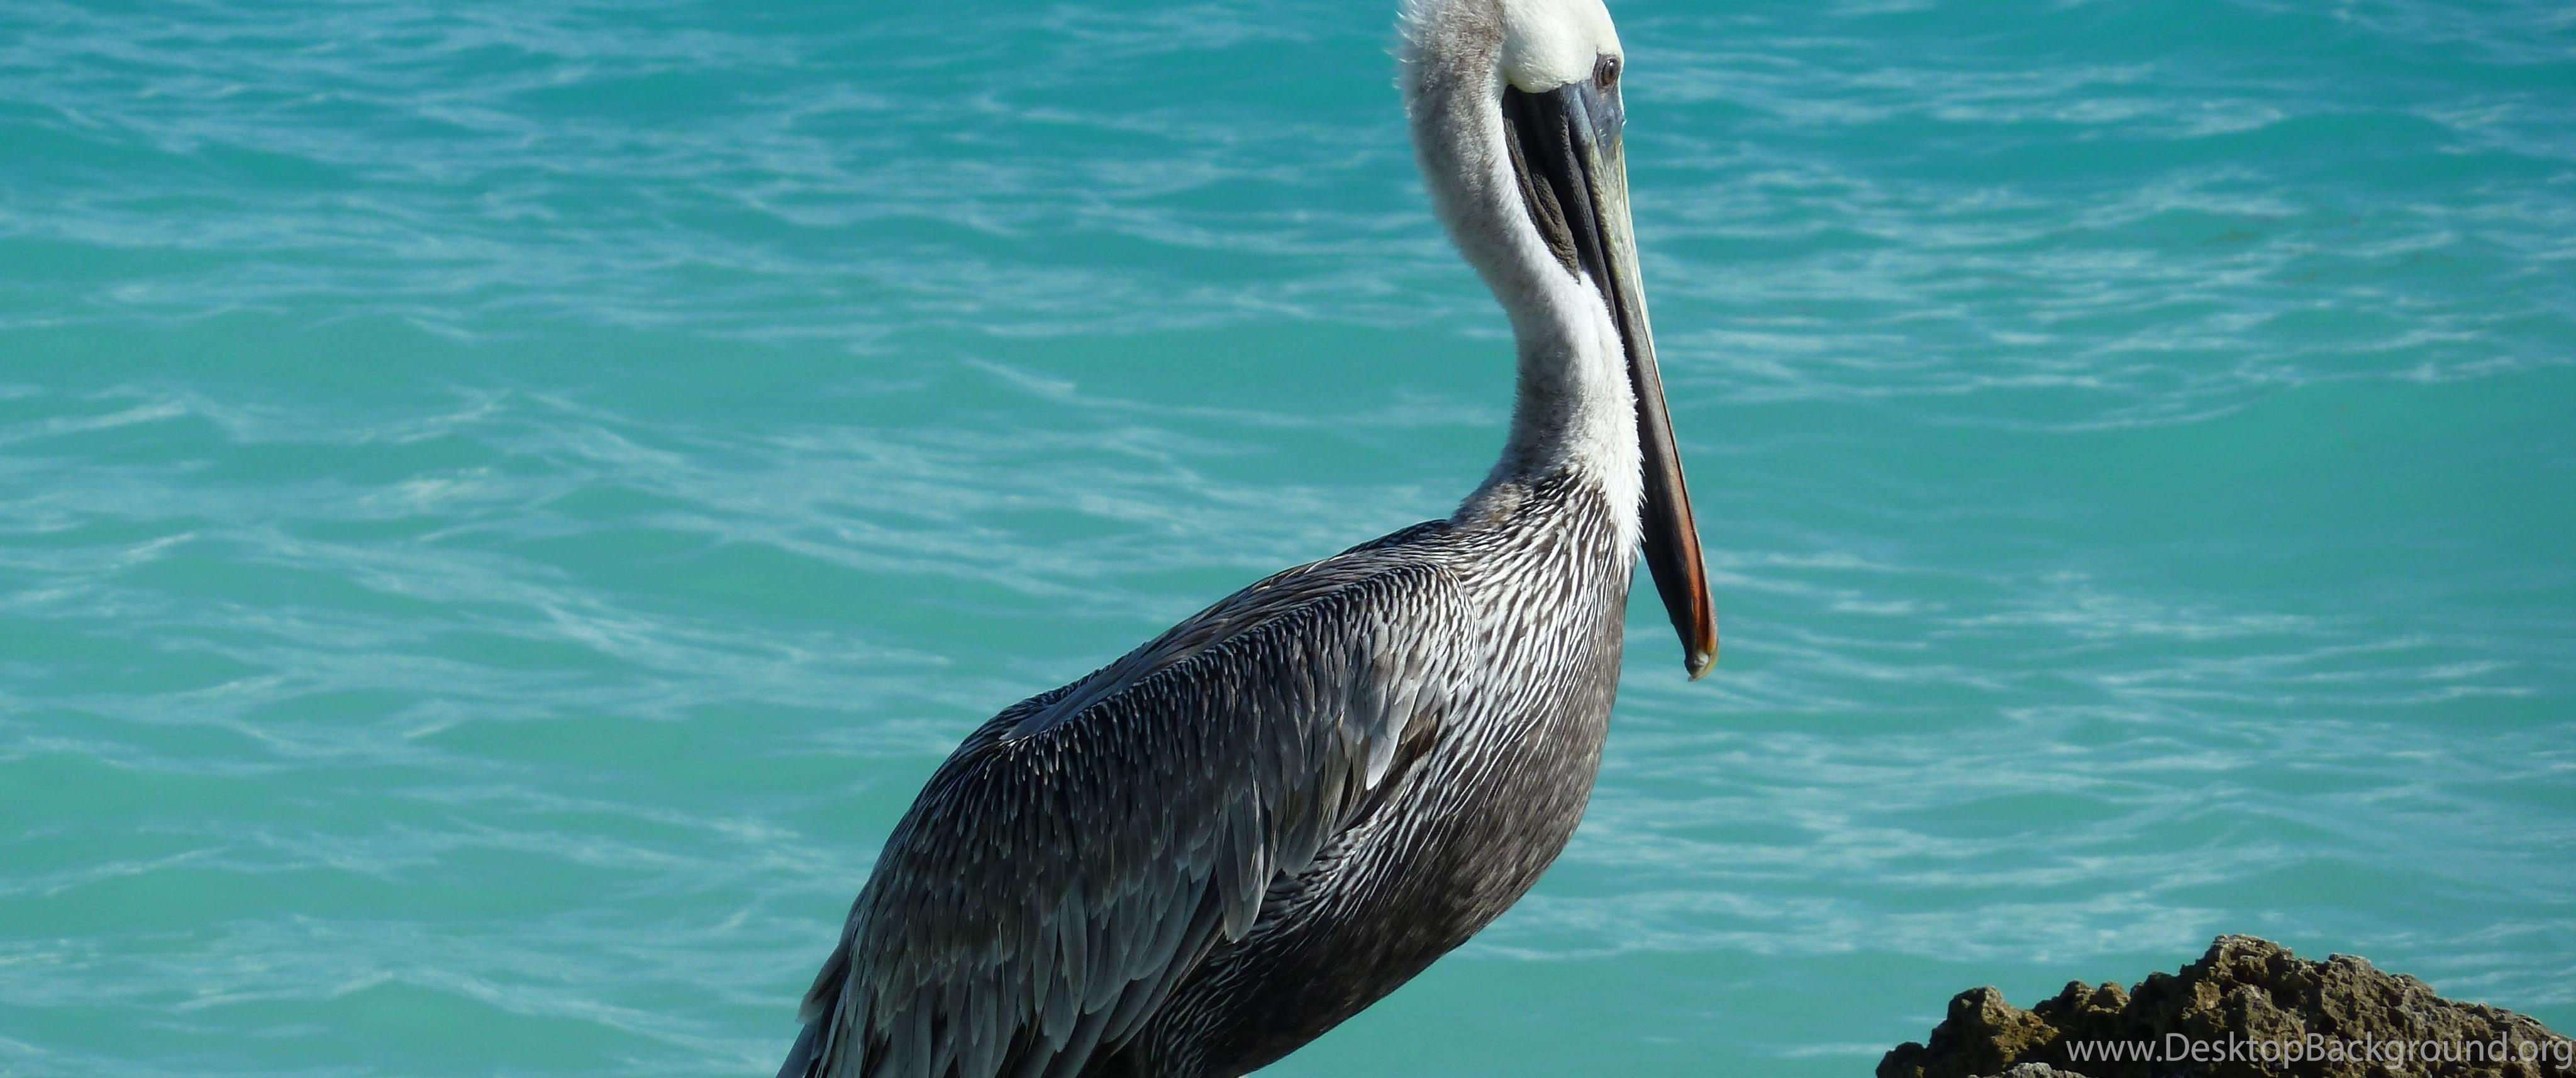 Pelican Desktop HD Wallpapers HD Wallpaper Backgrounds Of Your